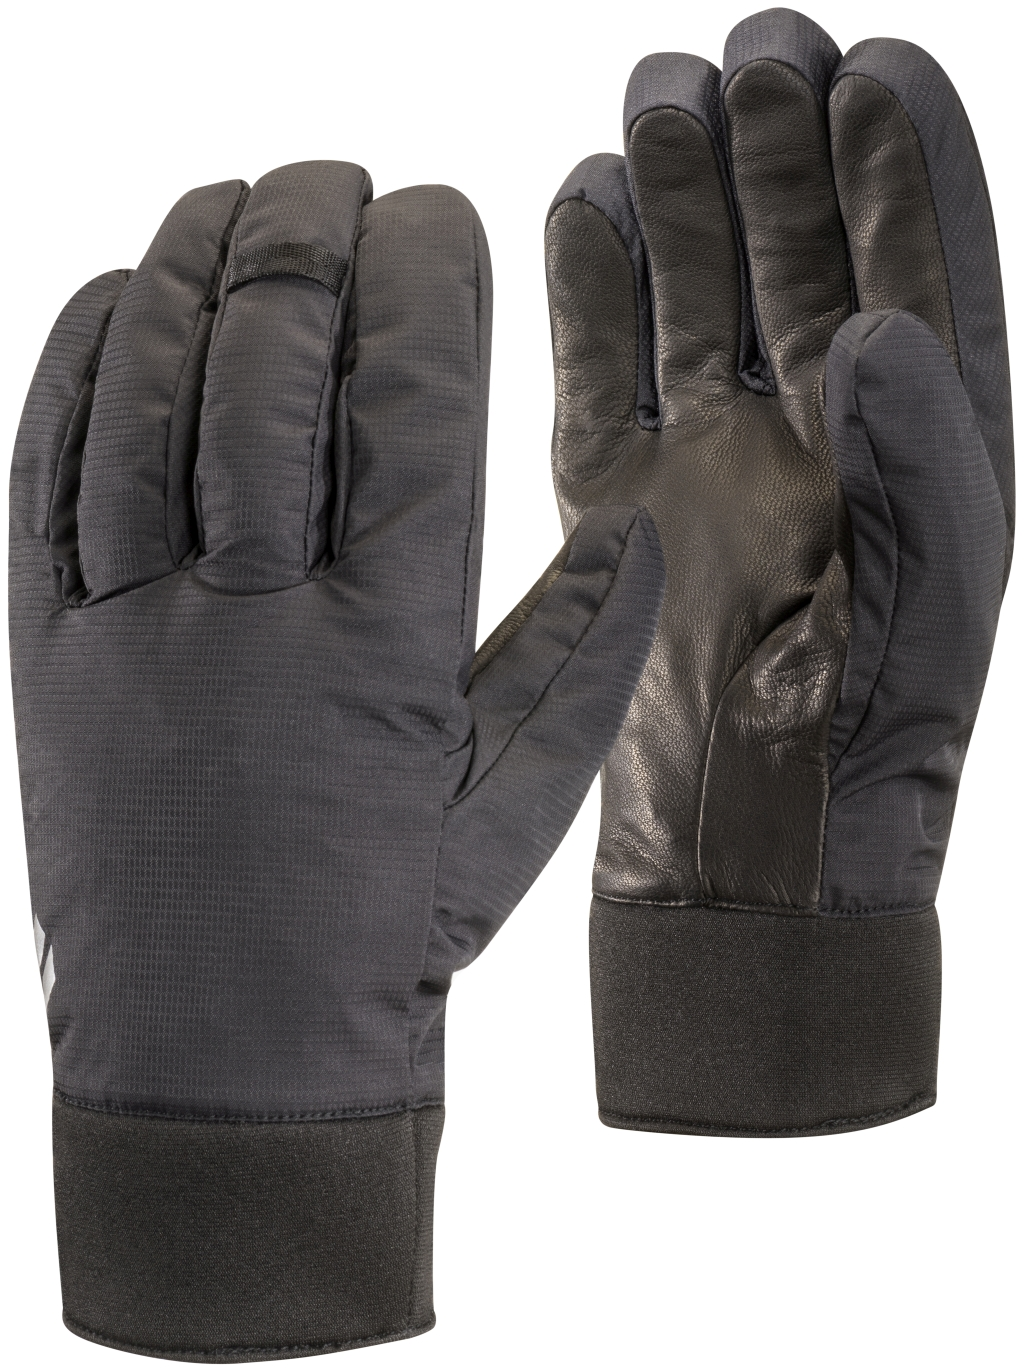 Black Diamond Midweight Waterproof Gloves Black-30